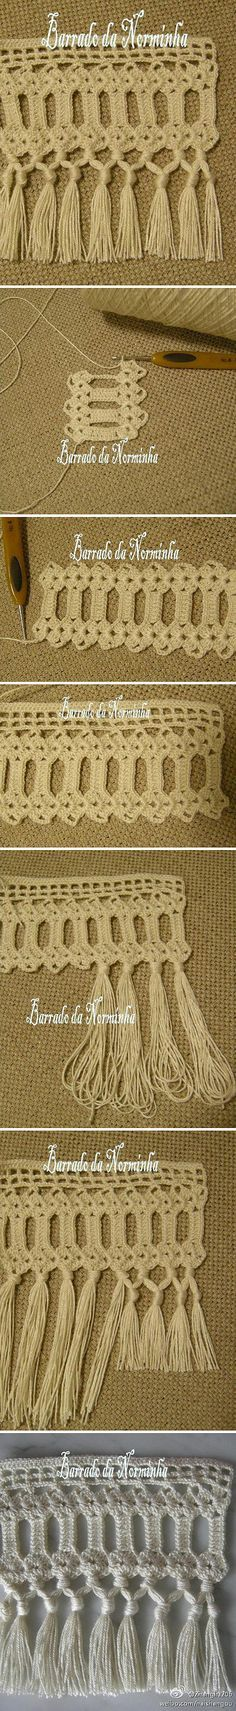 Crochet tassel edging tutorial ༺✿ƬⱤღ  https://www.pinterest.com/teretegui/✿༻